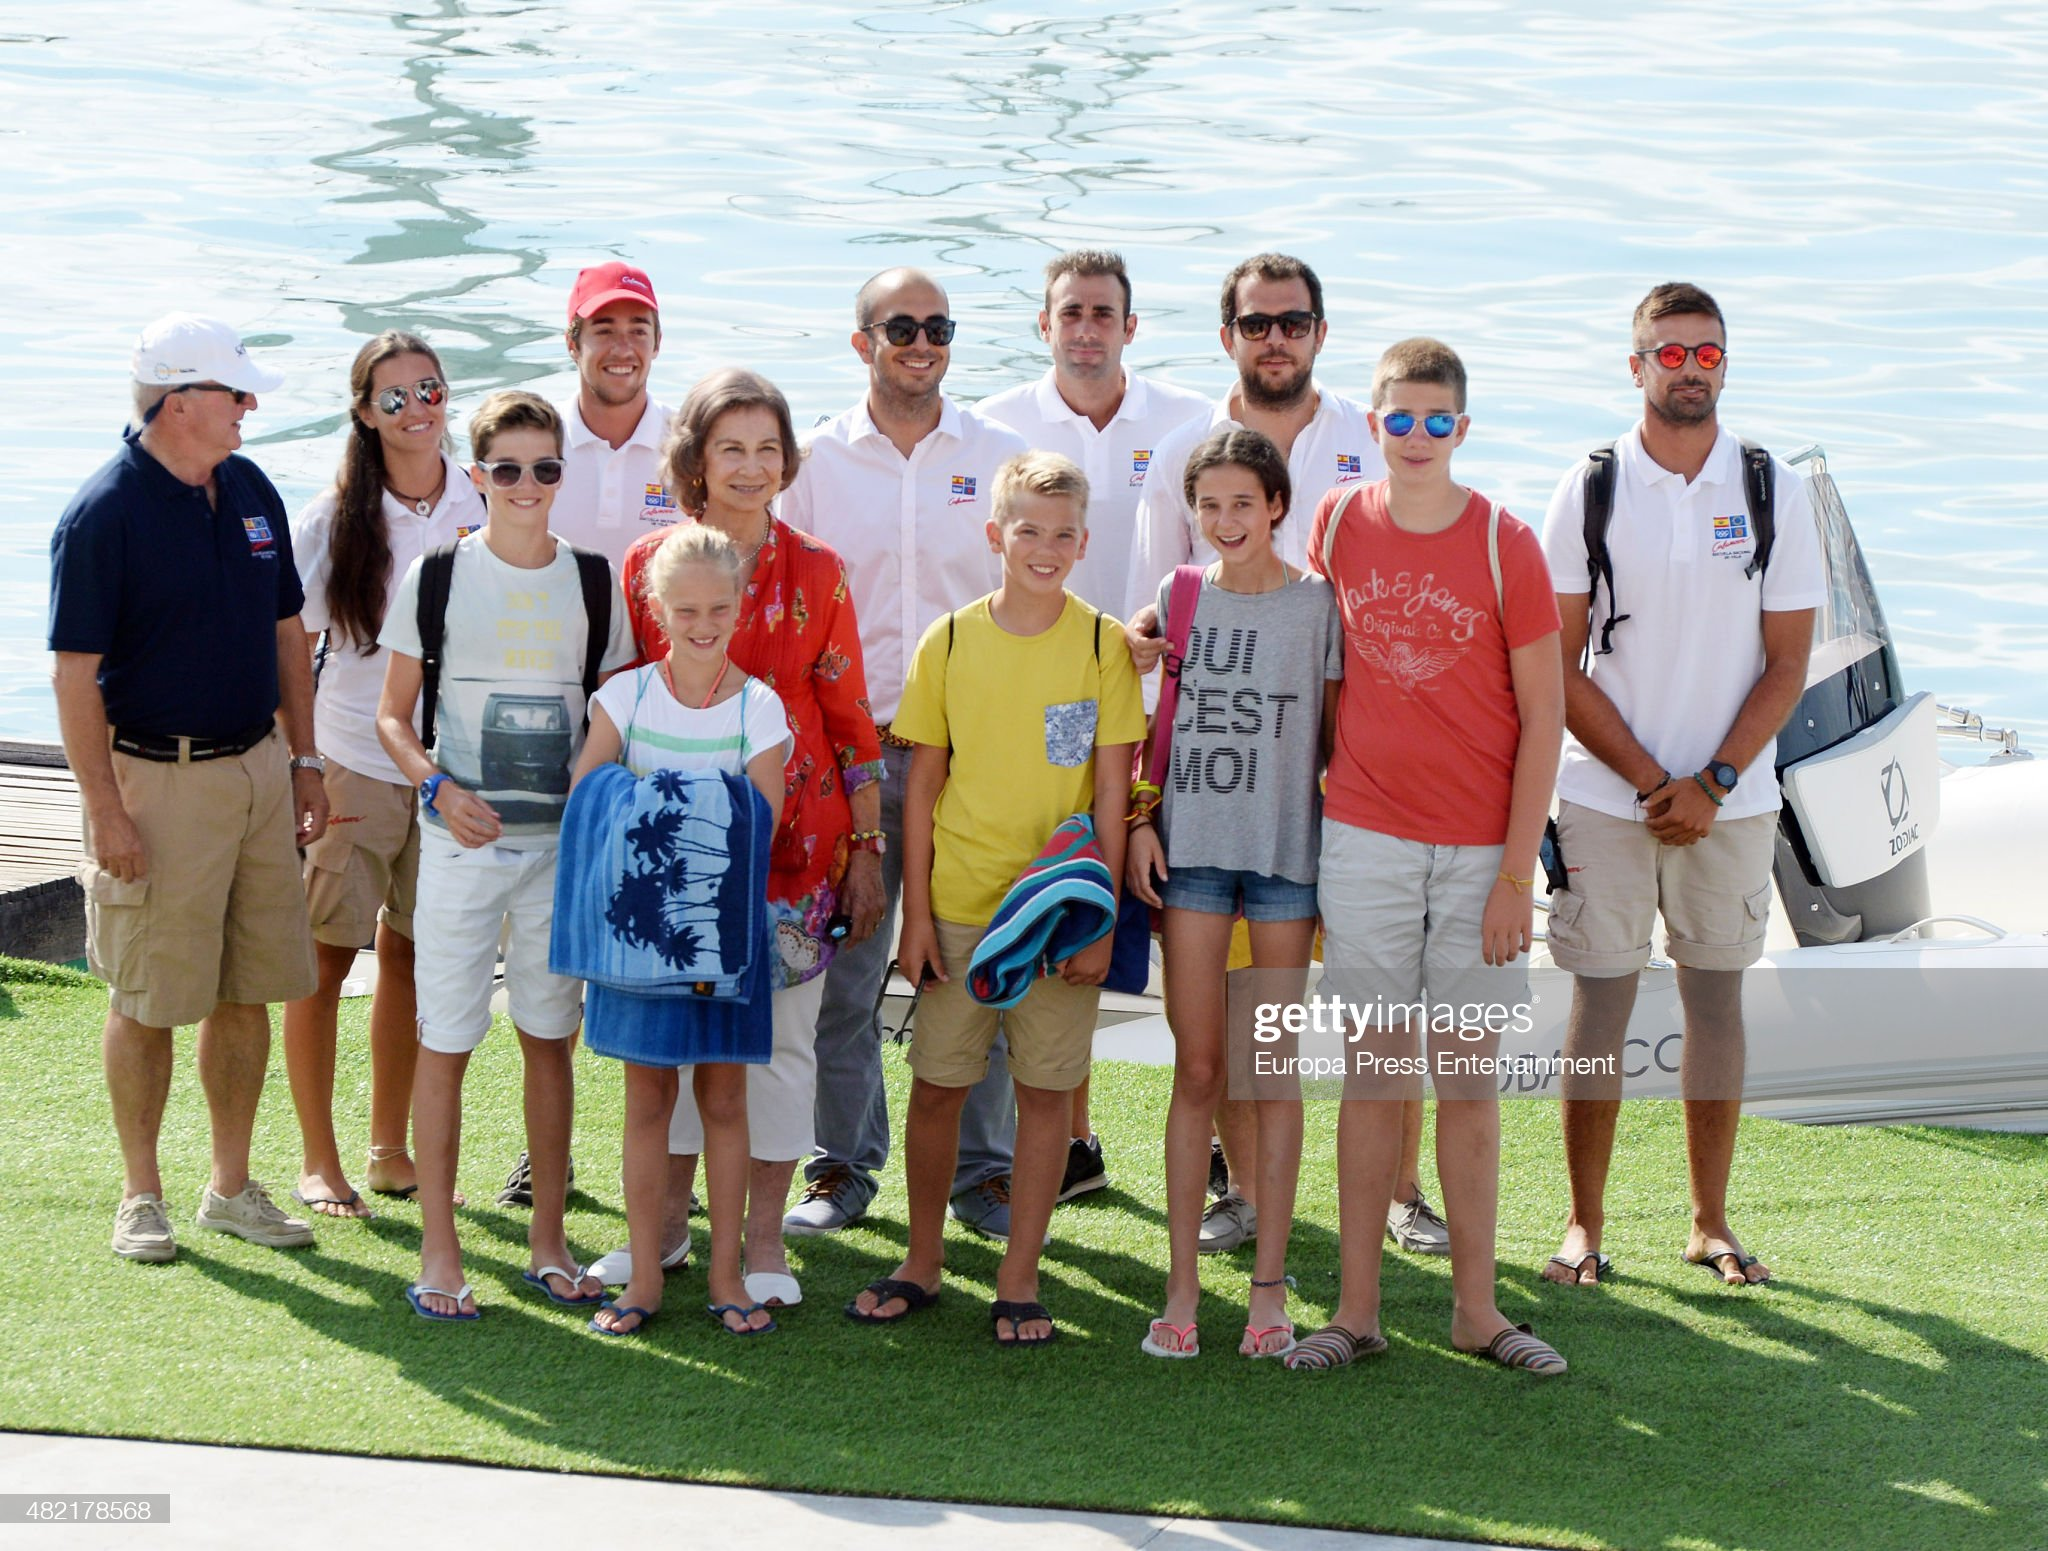 Spanish Royals At The Calanova Nautic Club In Mallorca - July 27, 2015 : Photo d'actualité